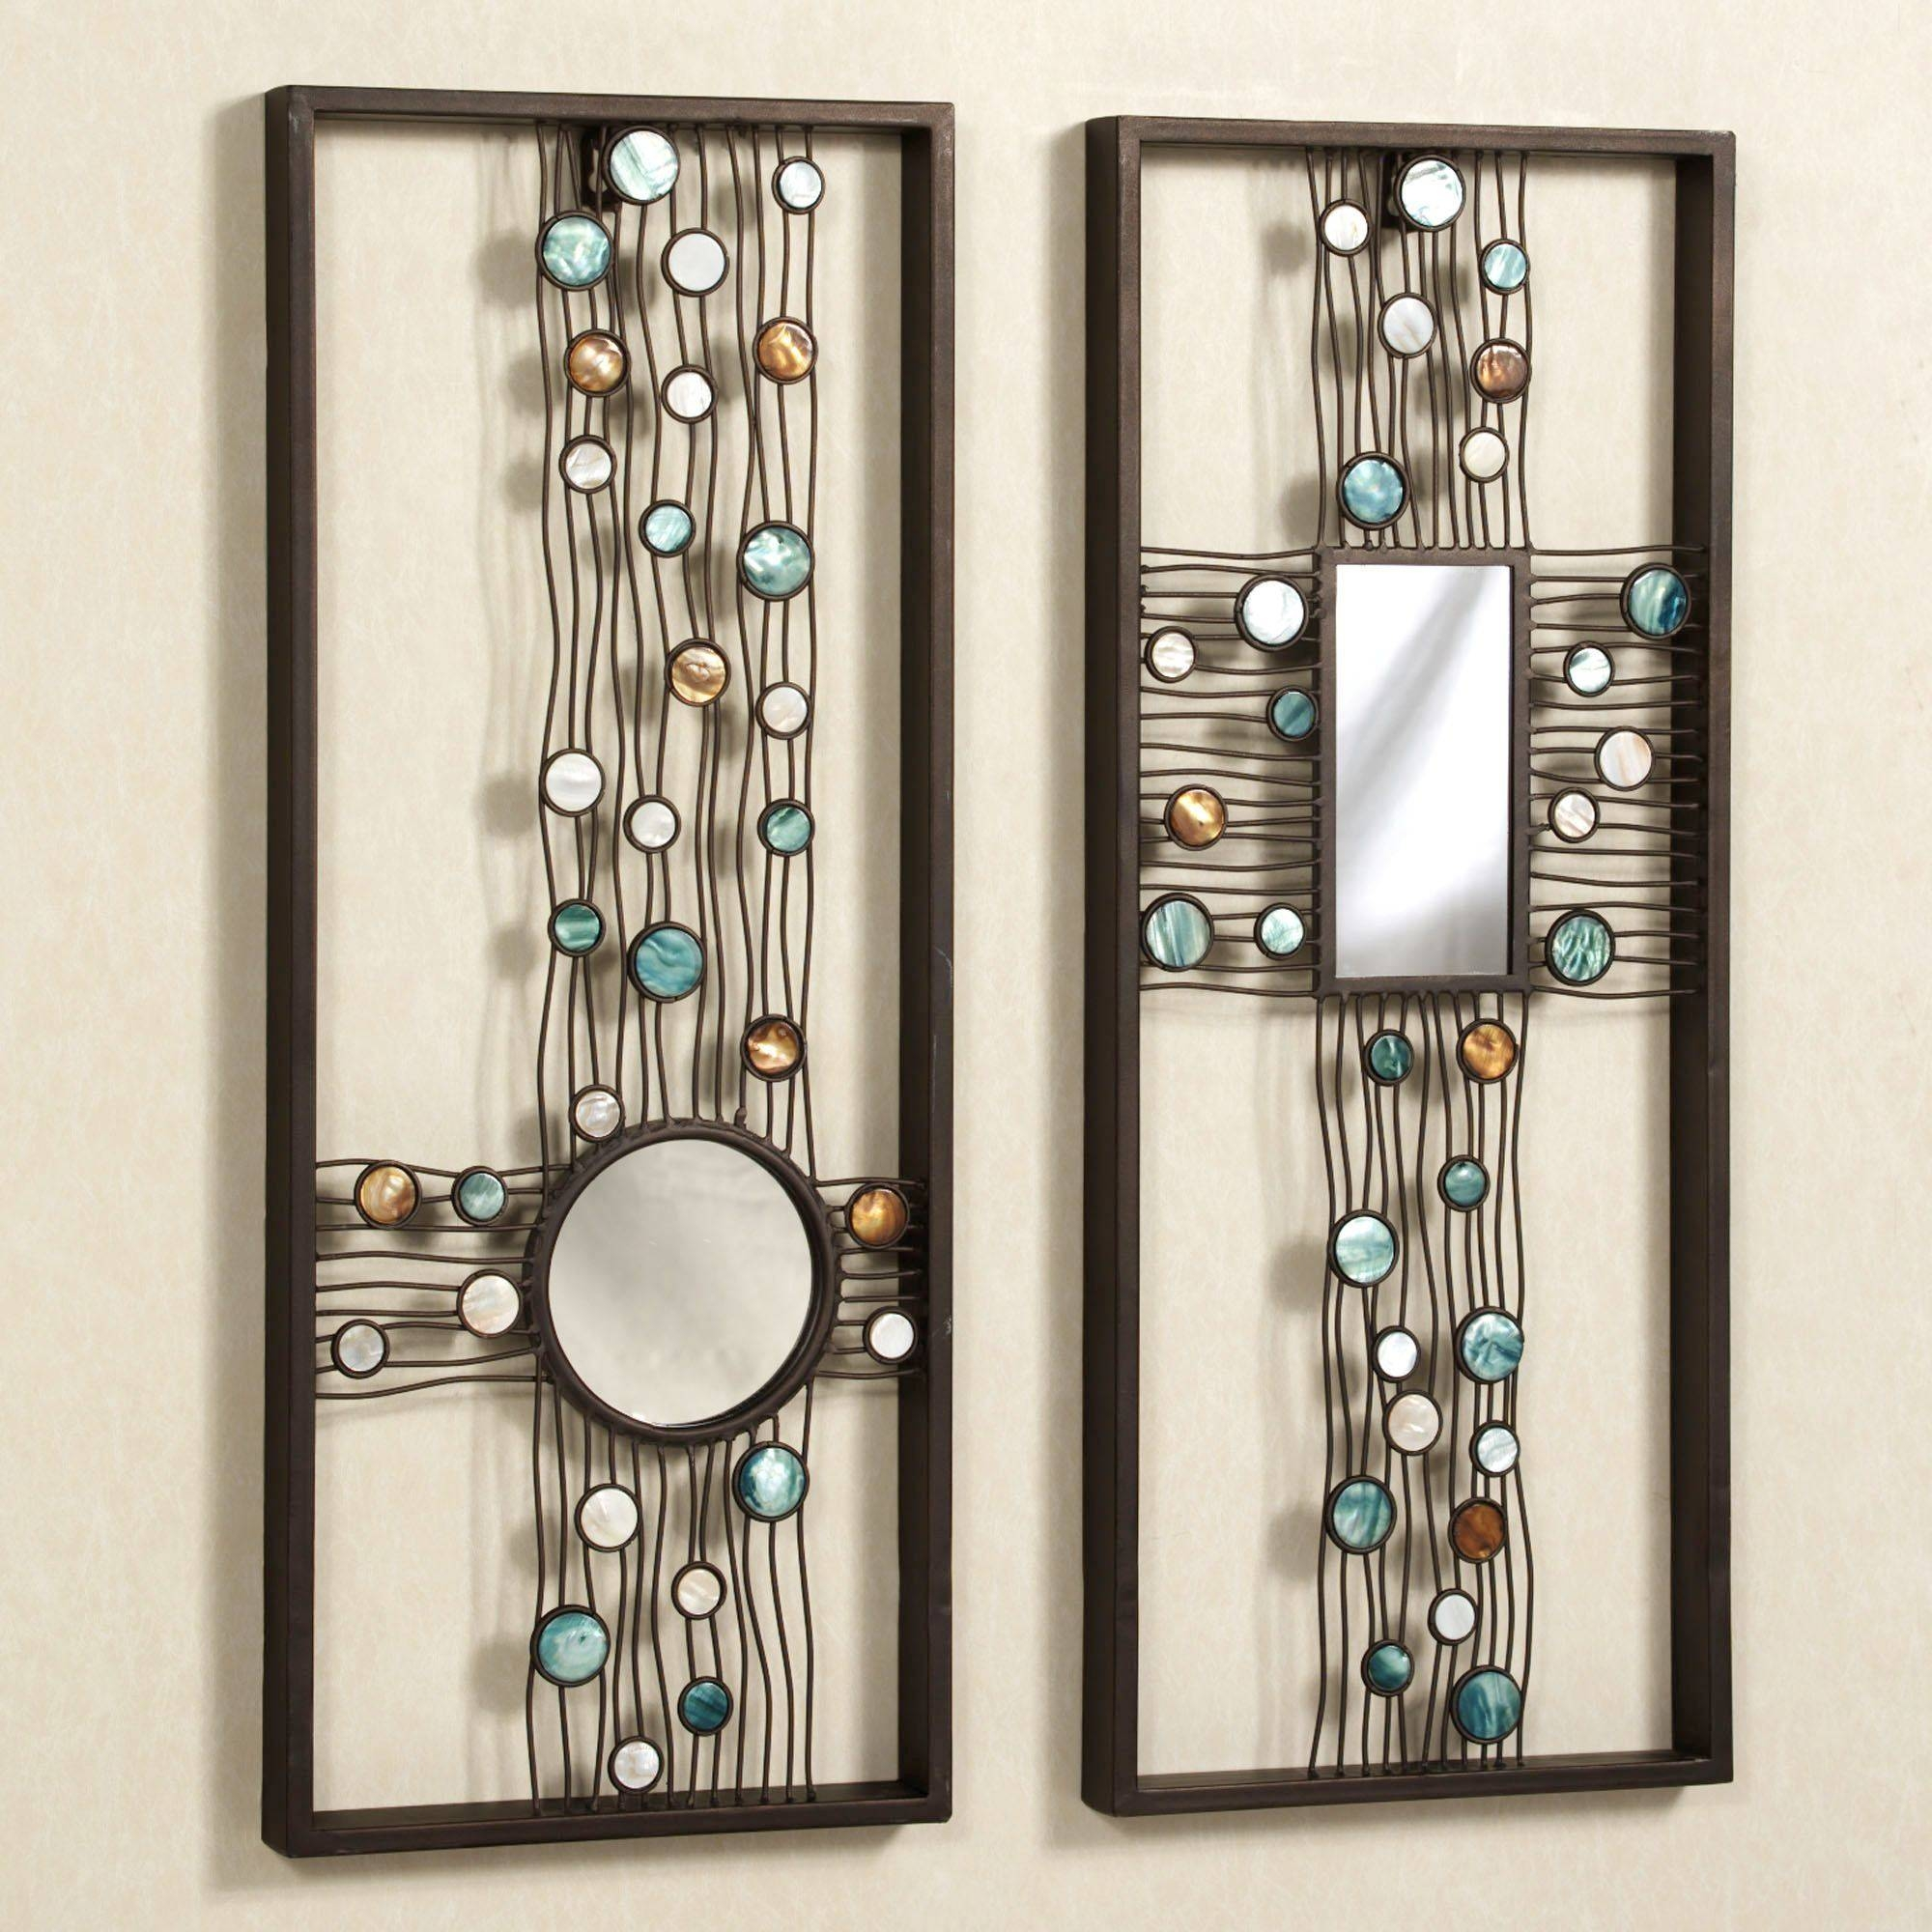 Capizia Metal Wall Panel Art Set Intended For Most Recently Released Metal Wall Art With Mirrors (View 1 of 20)